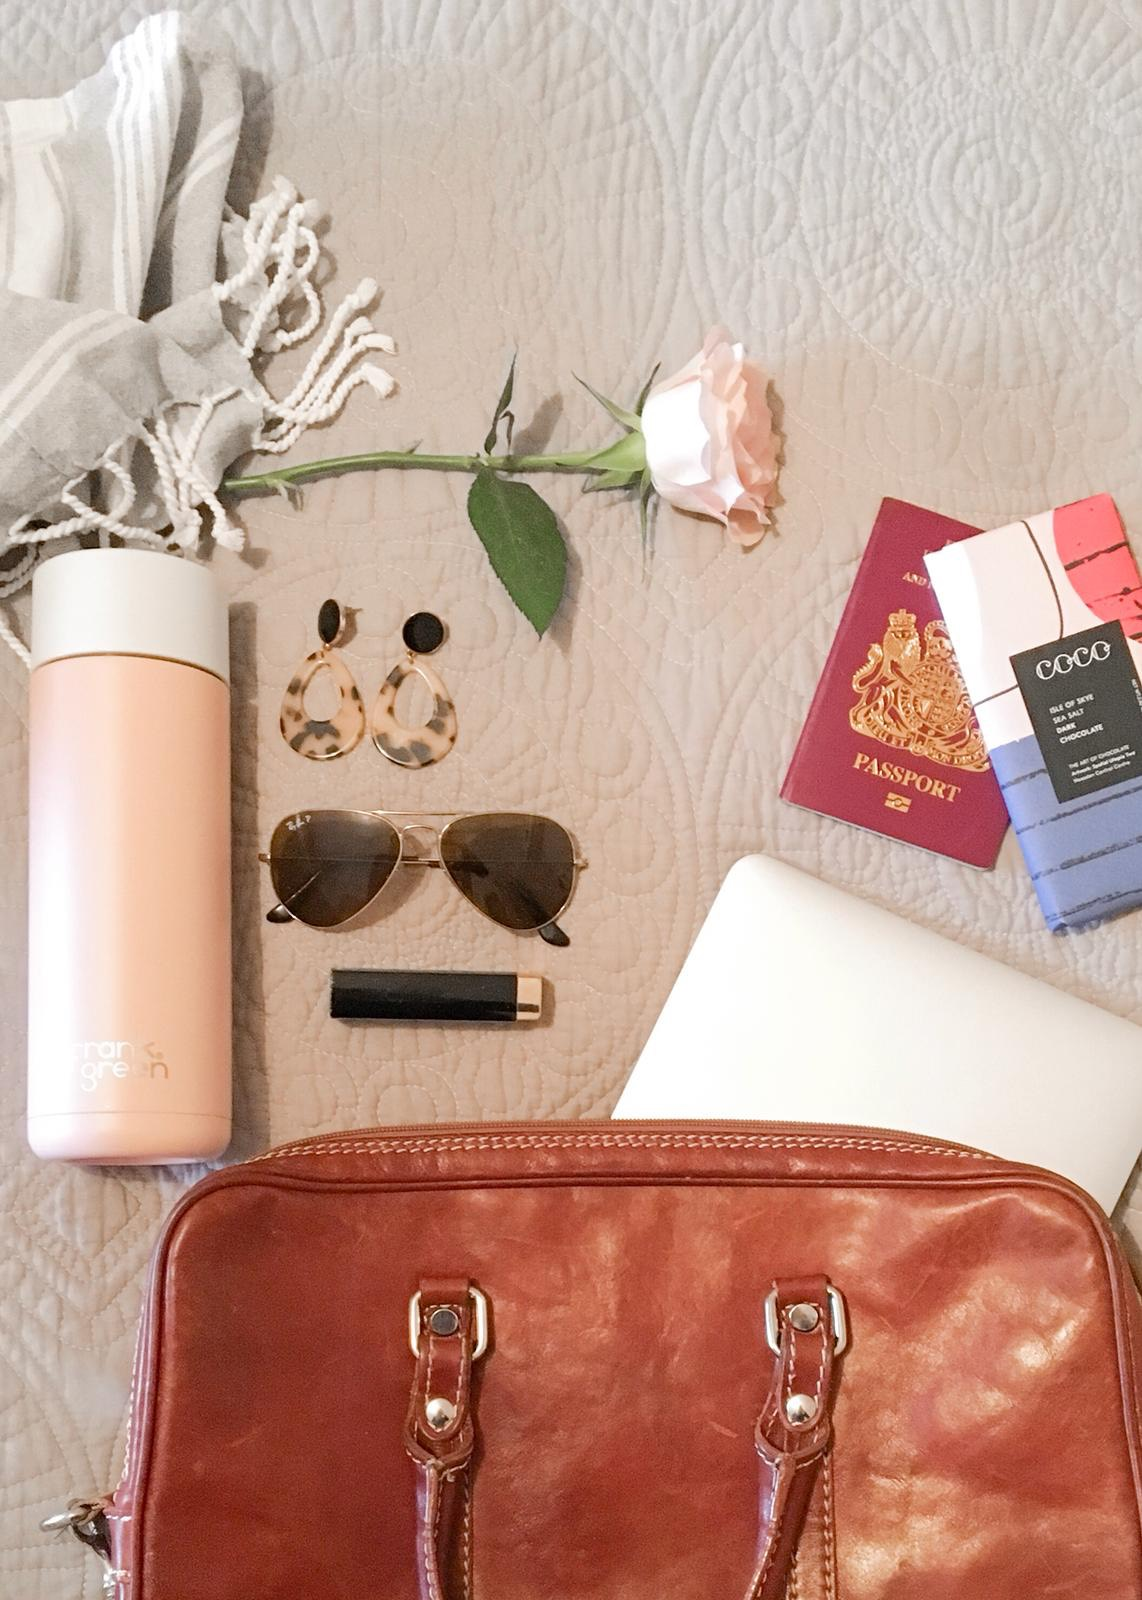 Thoughtful Traveller £36.50 - The Thoughtful Traveller, is the perfect duo for those that love preserving and experiencing the world! With a reusable Frank Green Water Bottle keeping water cool for up to 10 hours and COCO Chocolatier Vegan Isle of Skye Dark Sea Salt chocolate to snack on, this really is the most versatile gift.